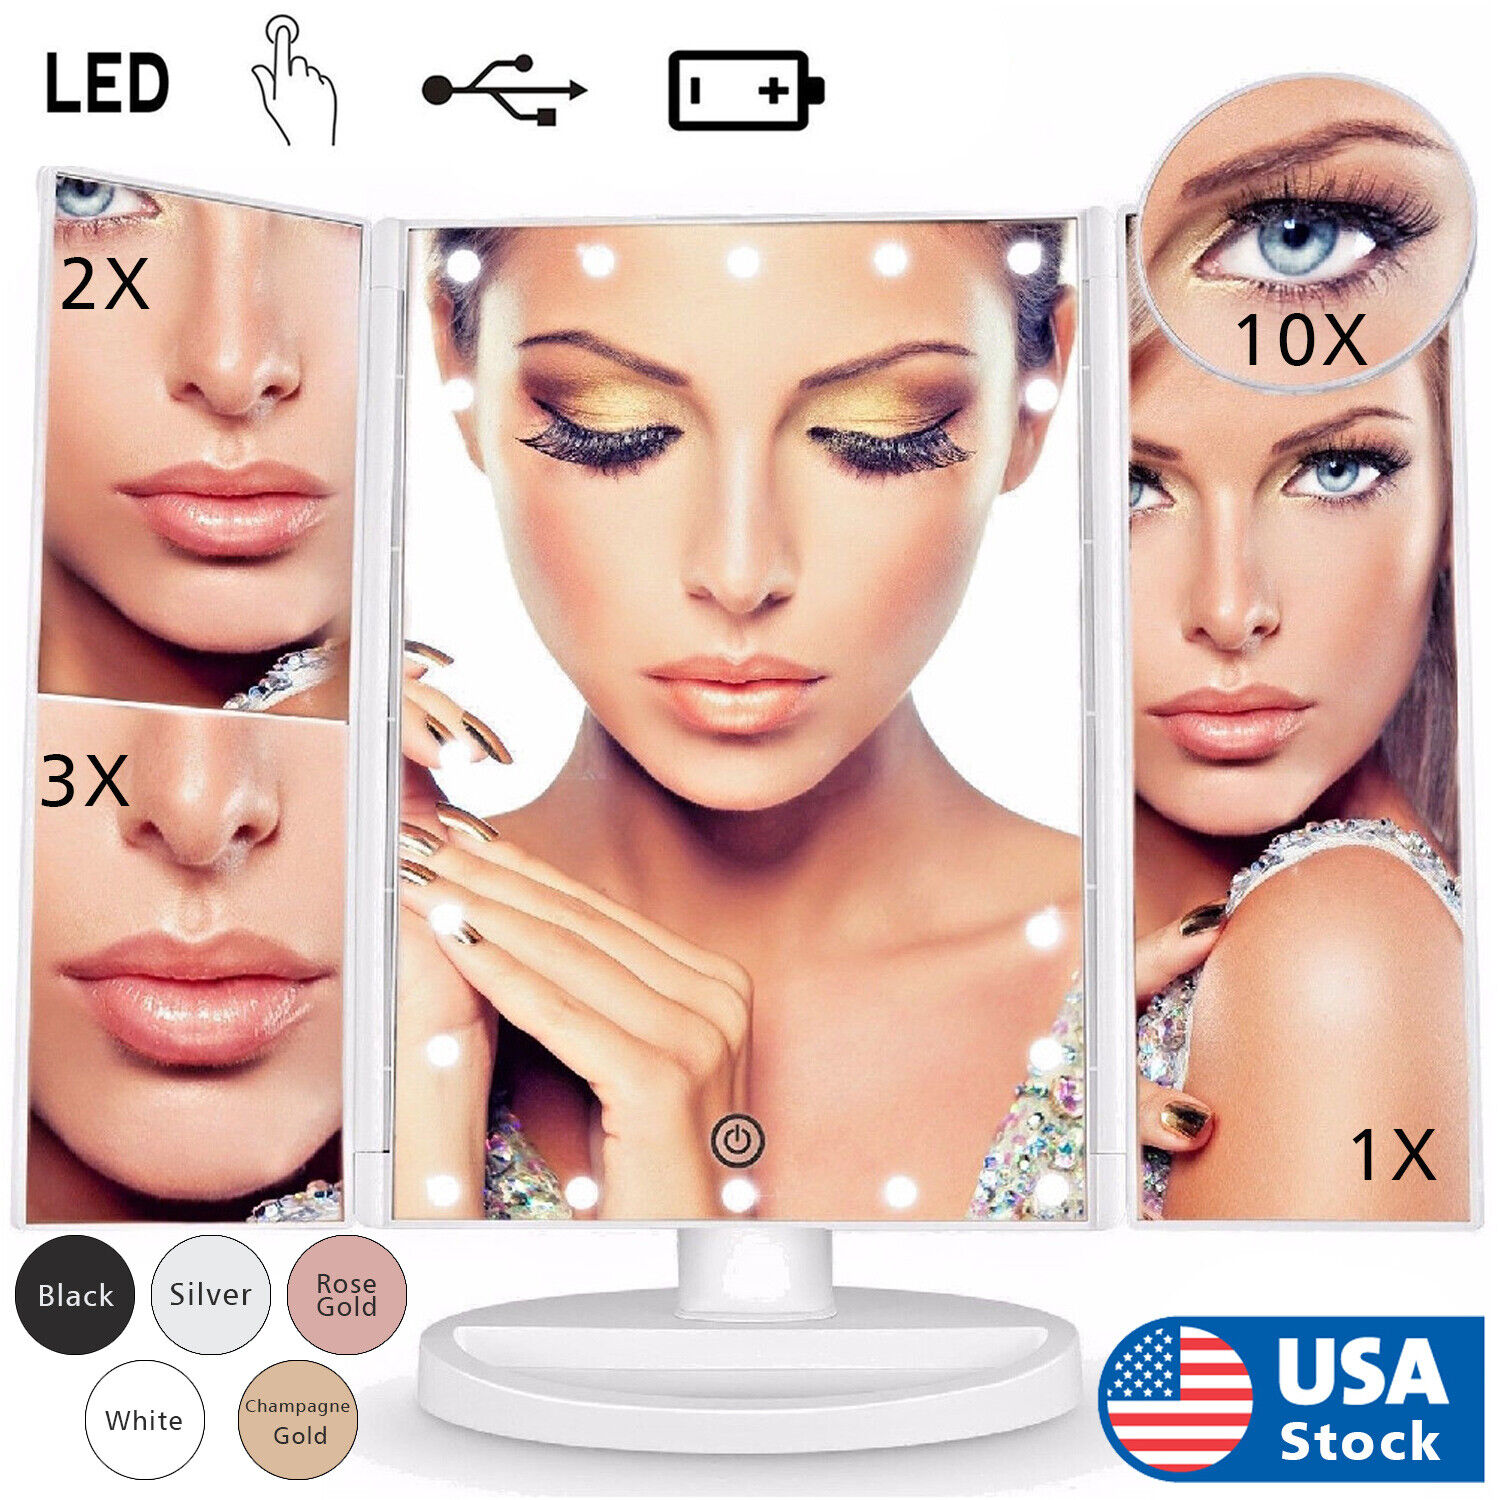 USB LED Tri-Fold 2X 3X 10X Magnifying Makeup Mirror Touch Screen Standing Lights Health & Beauty